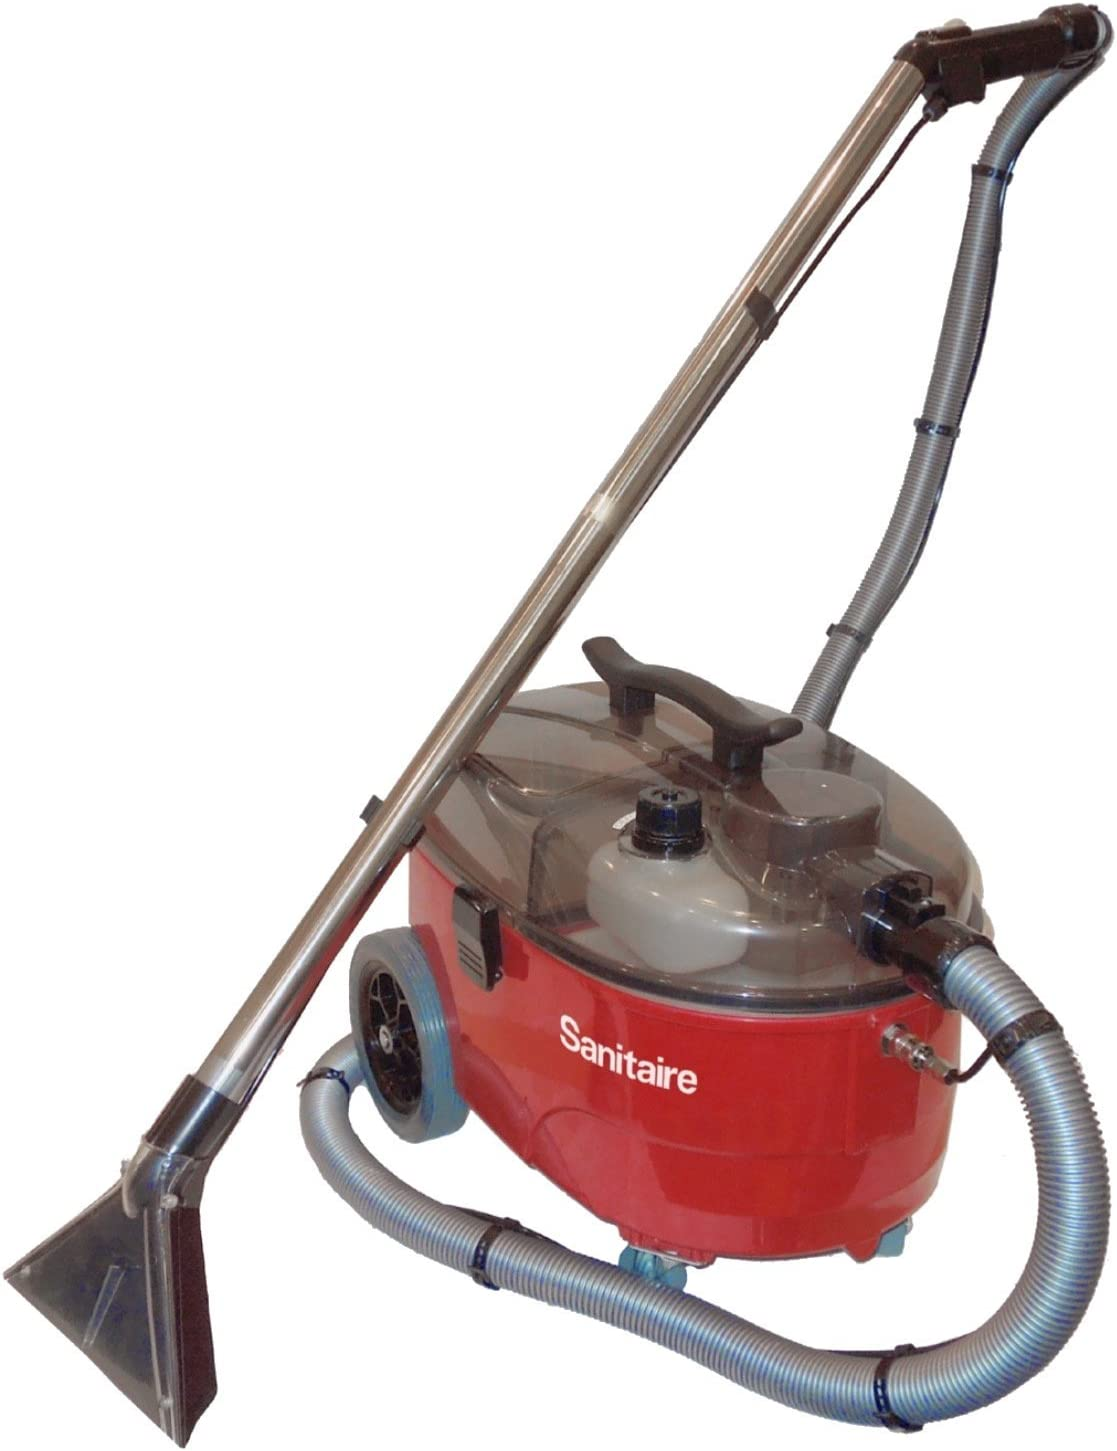 EUREKA Sanitaire Carpet Extractor, 9 Amps. Commercial Motor, 1.5 Gallon Tank-2464772